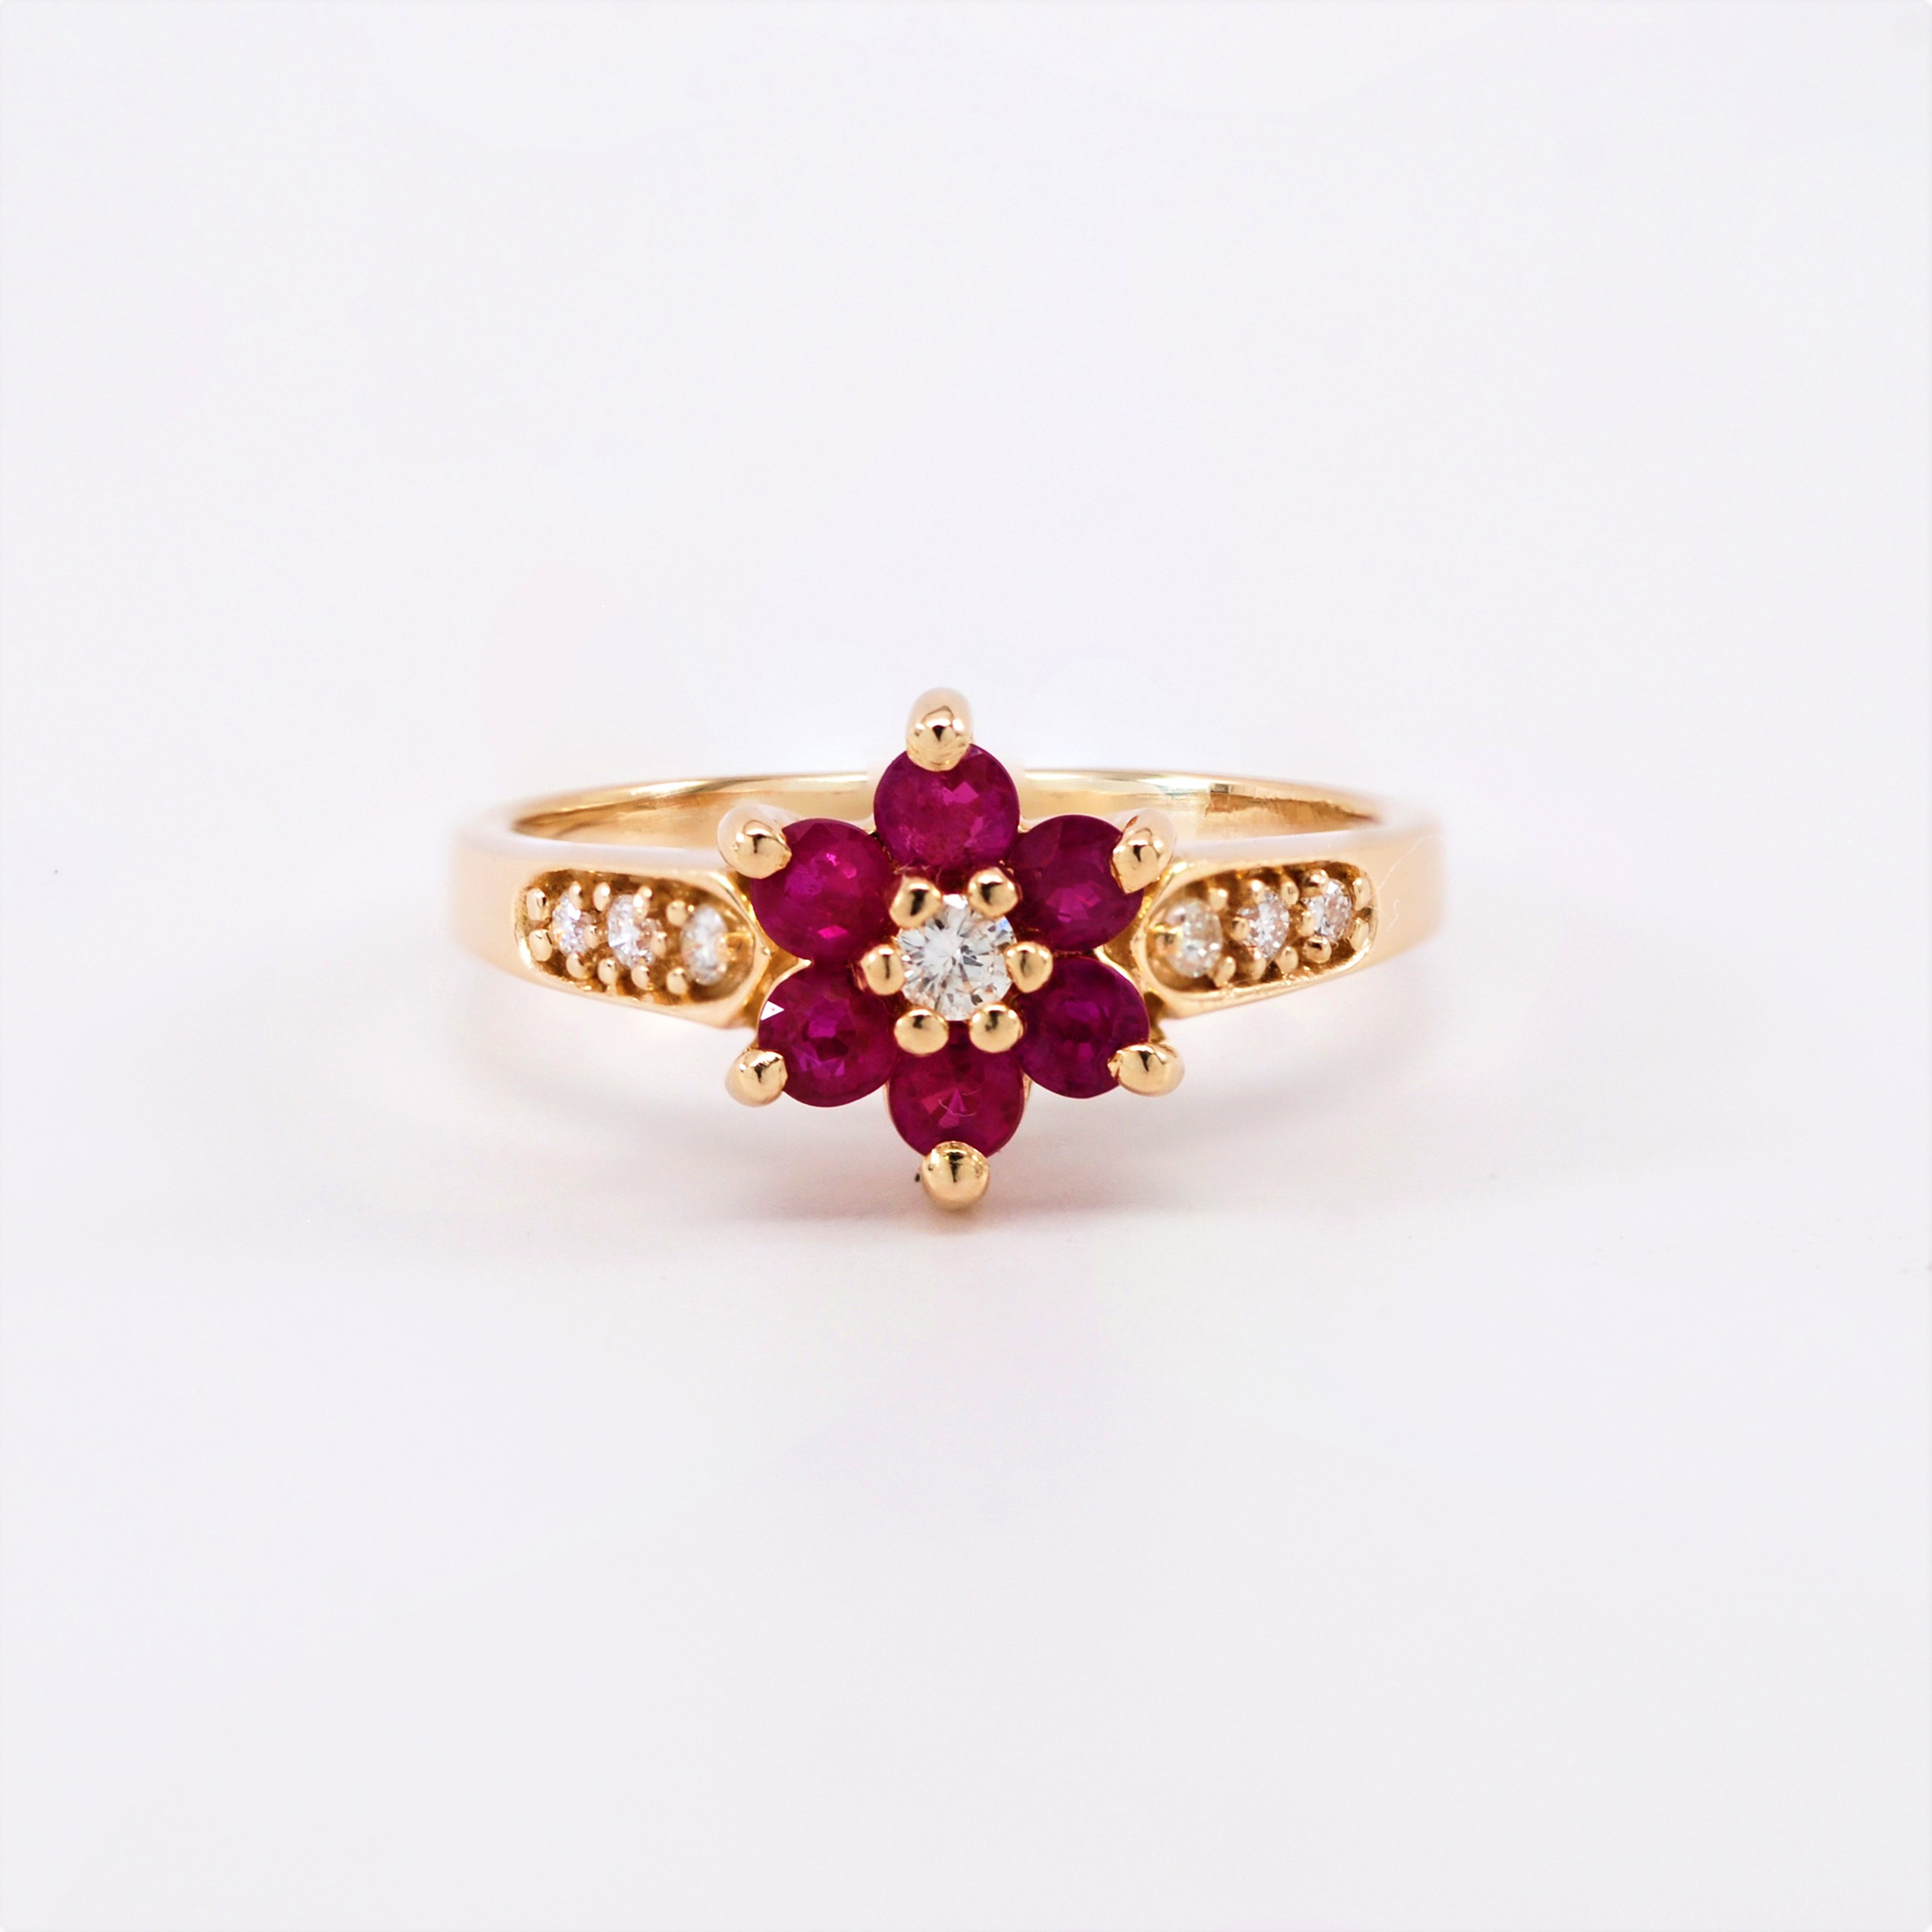 si ruby gold h i in and janelle diamond rings white stone bezel three natural set engagement ring